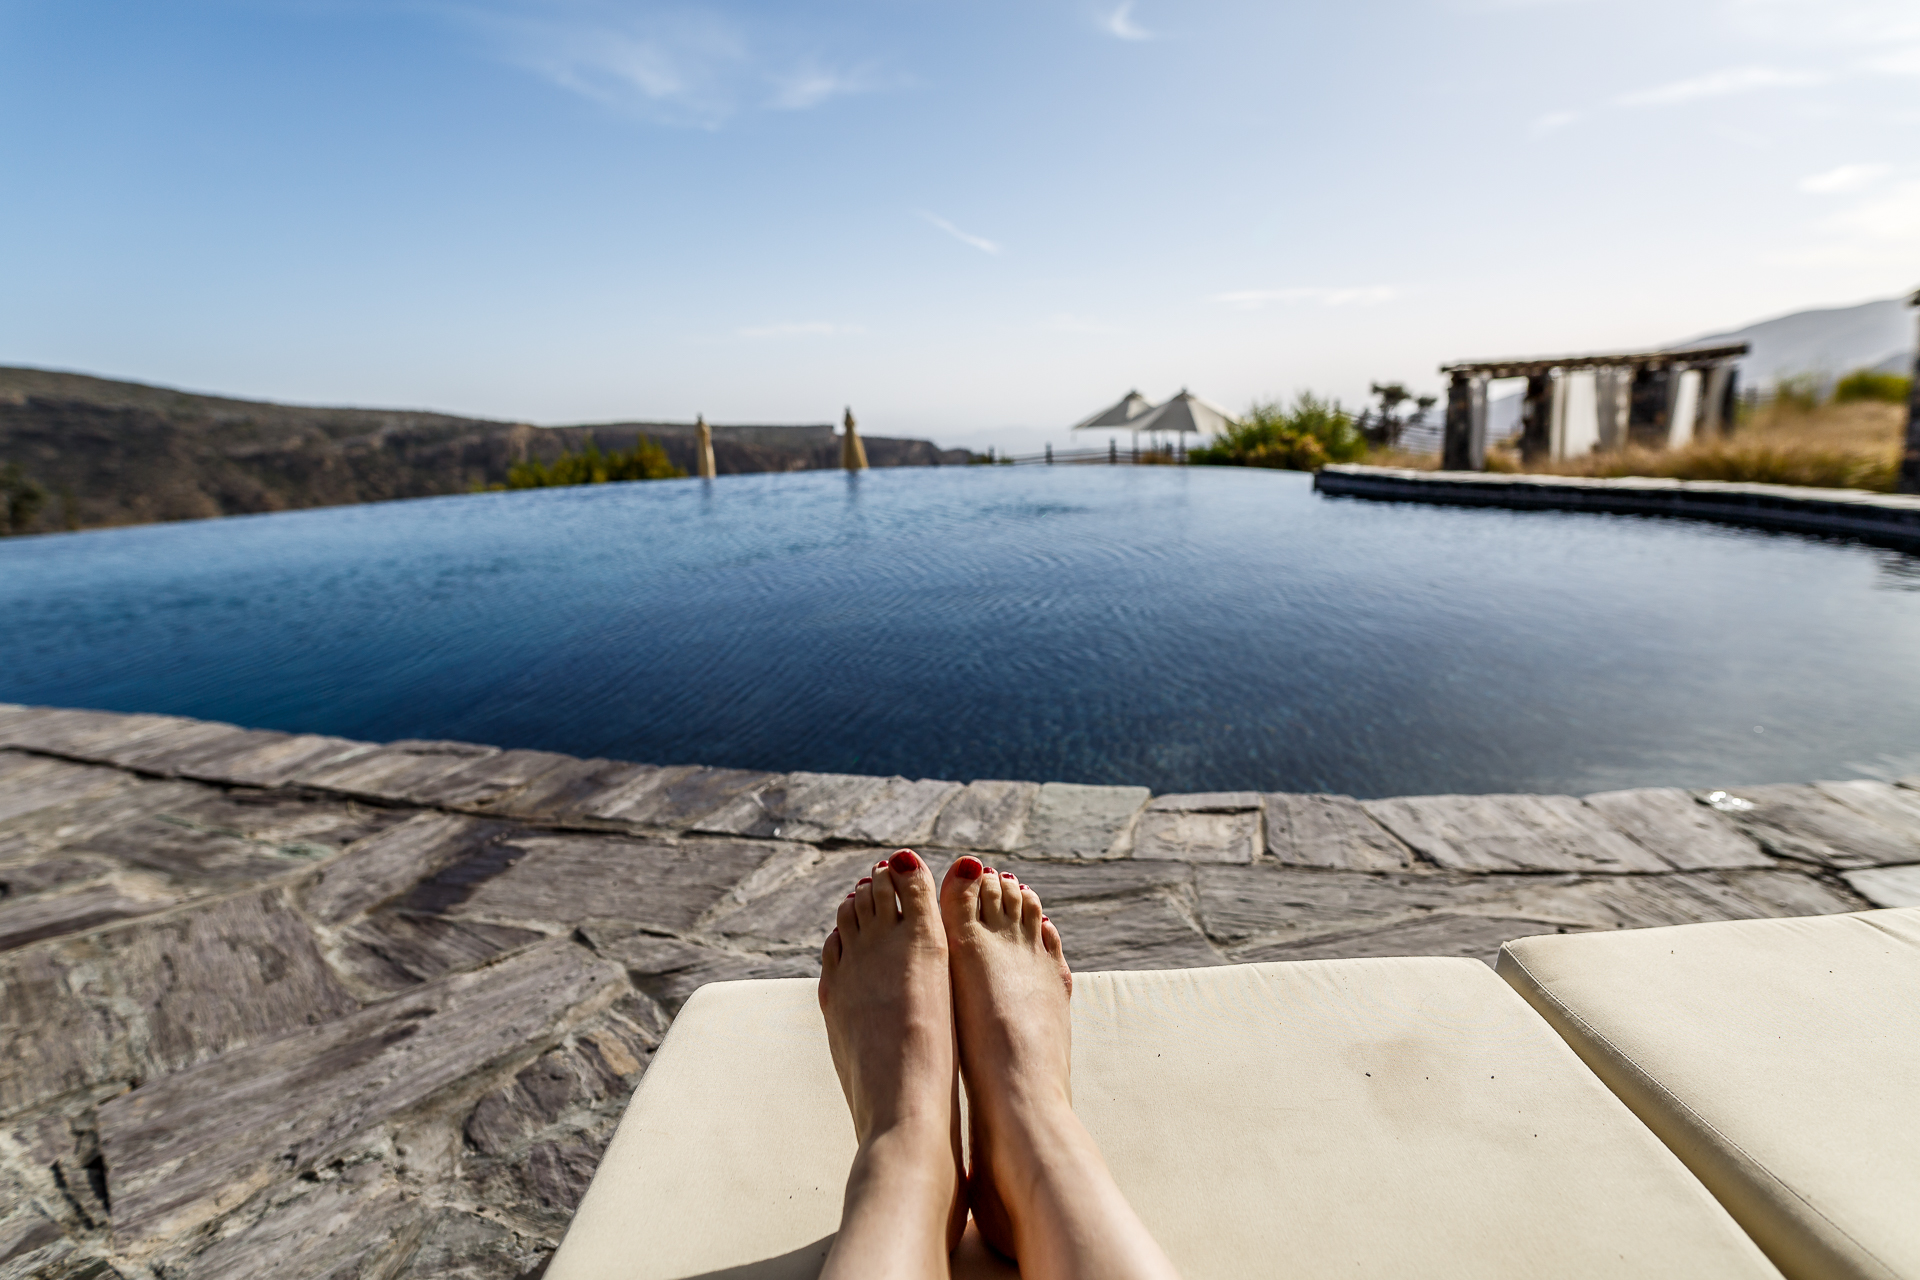 Alila-Jabal-Akhdar-Pool-Relaxing